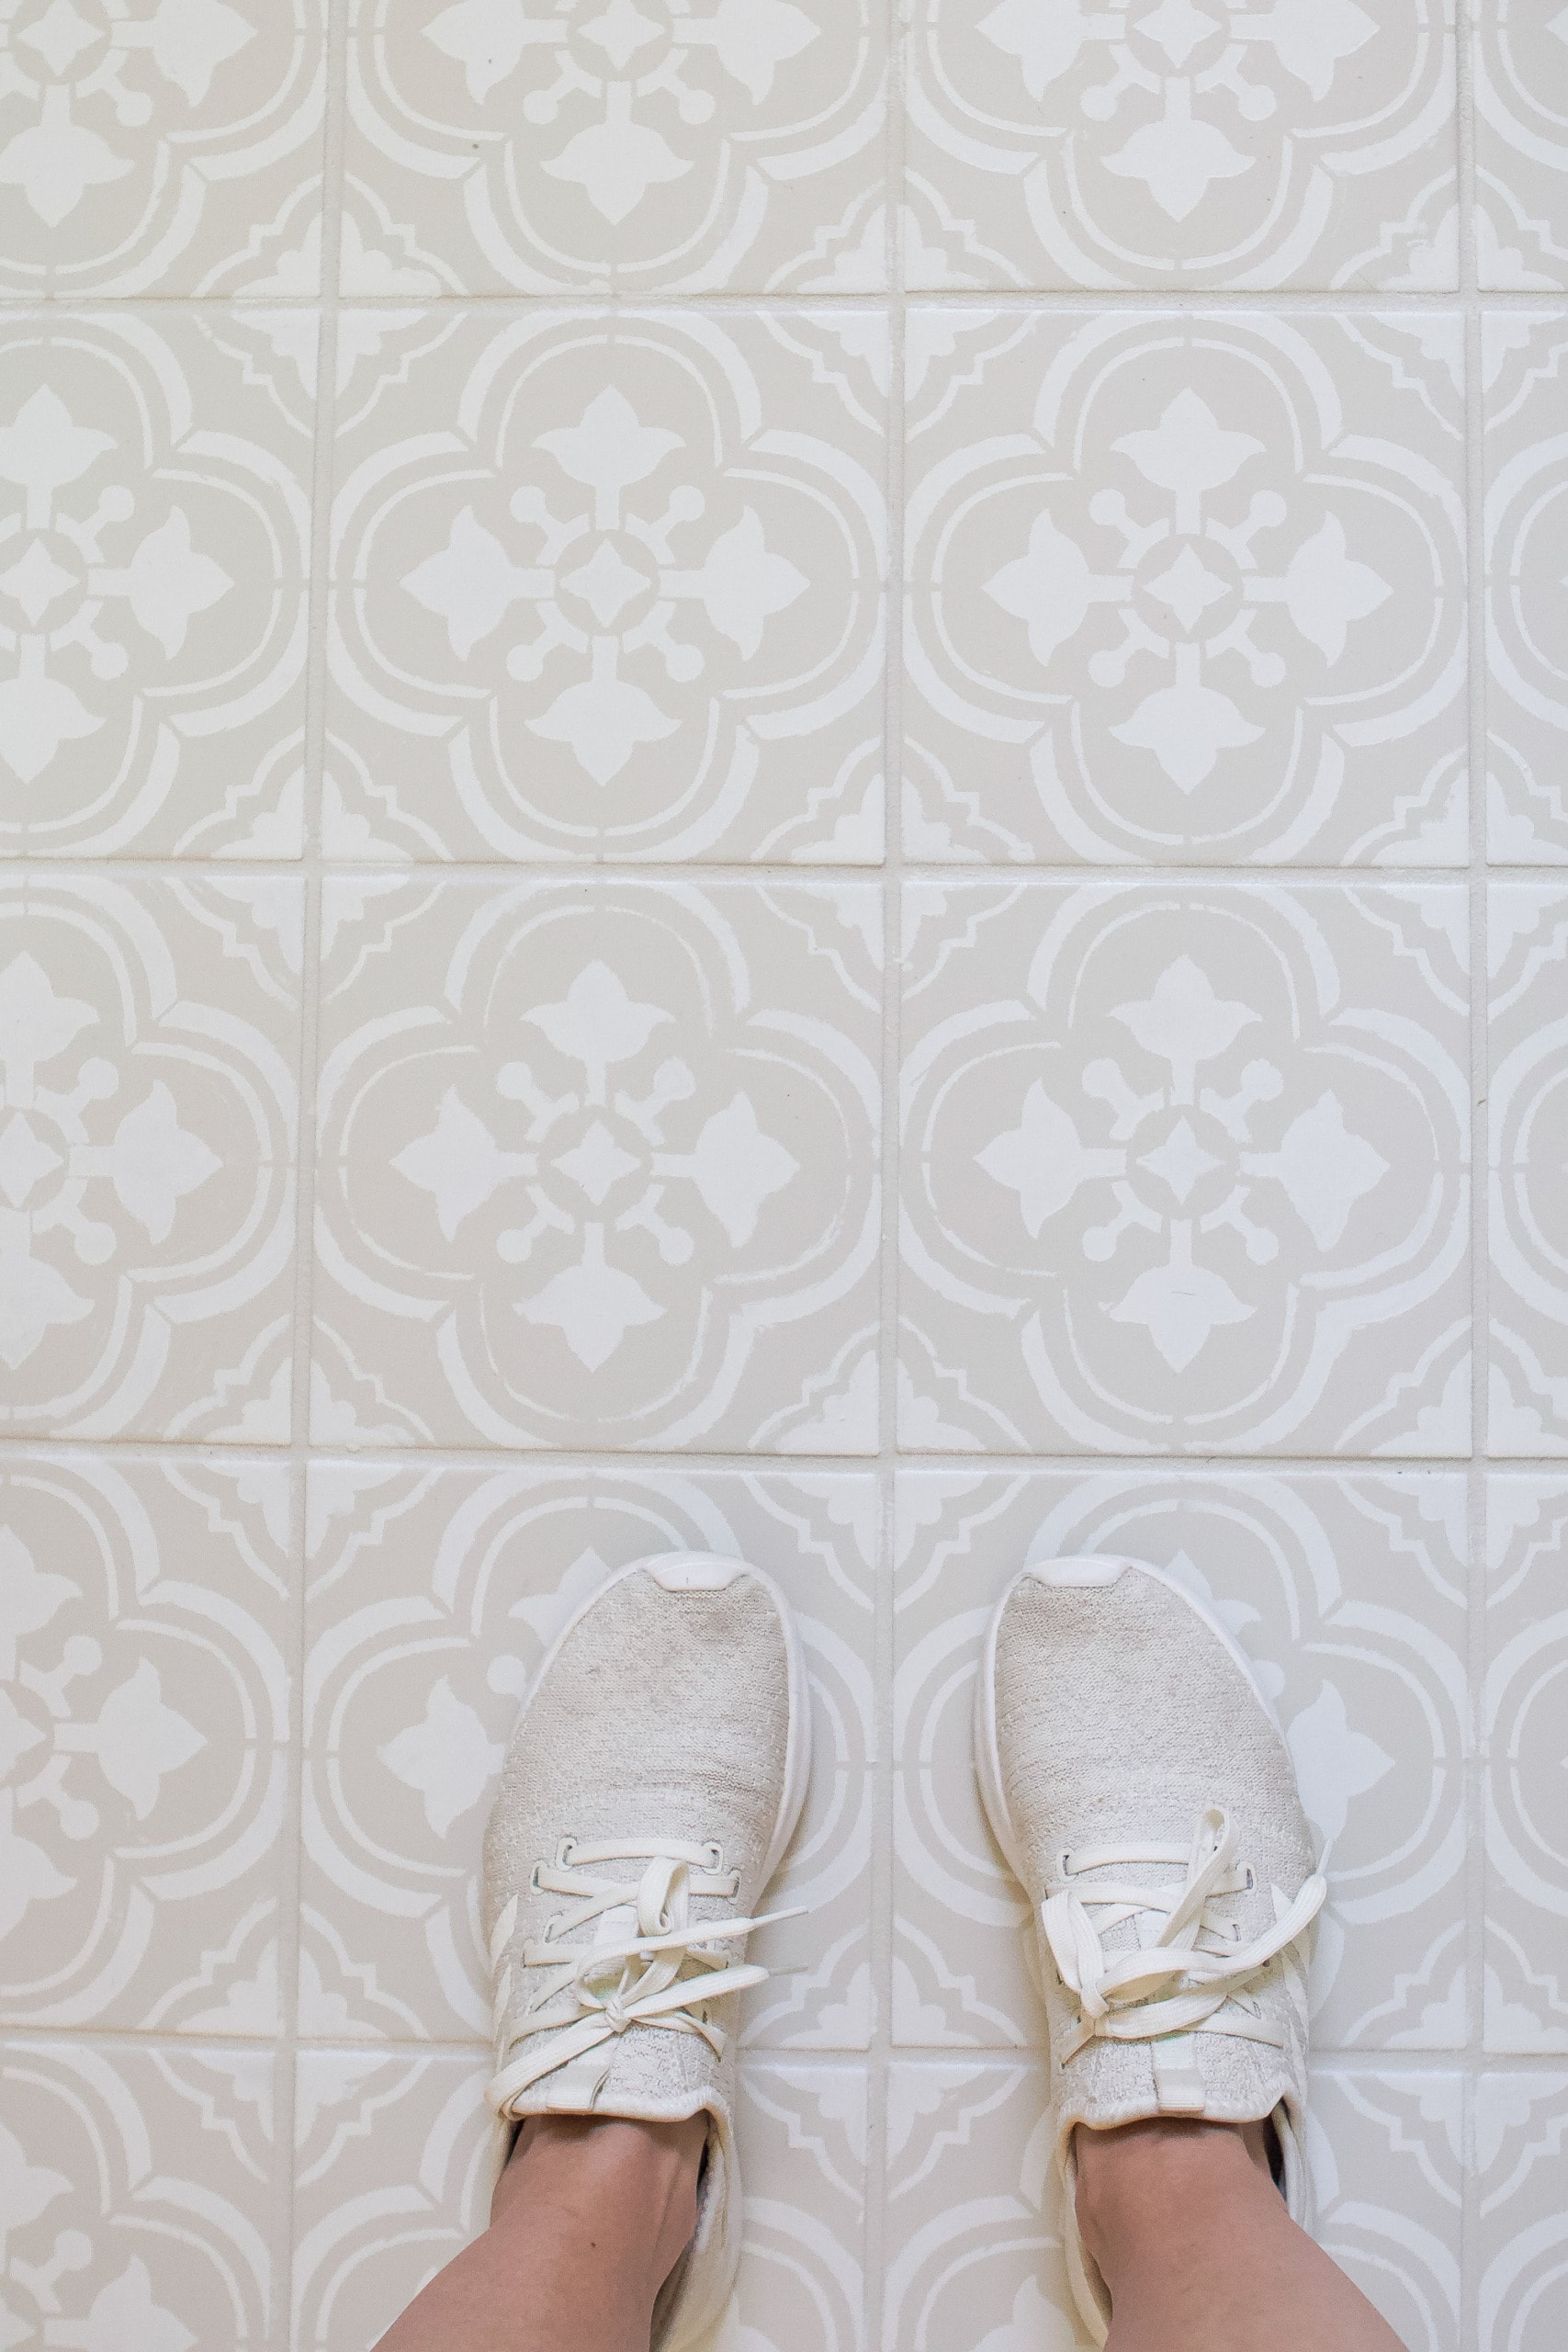 How to paint a bathroom floor